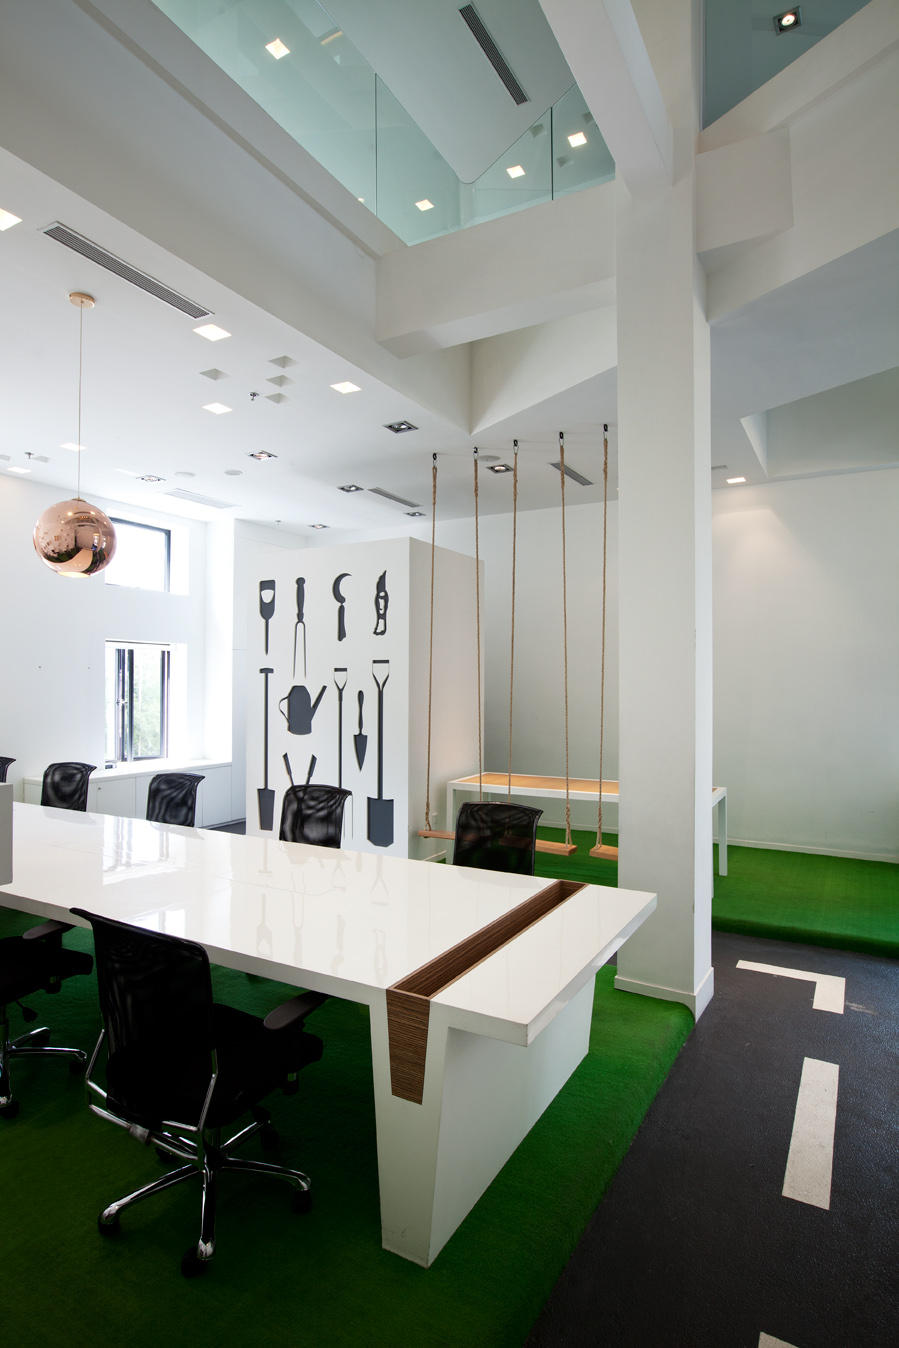 Work in a Park, Play in the Office 2 by Dariel-Studio